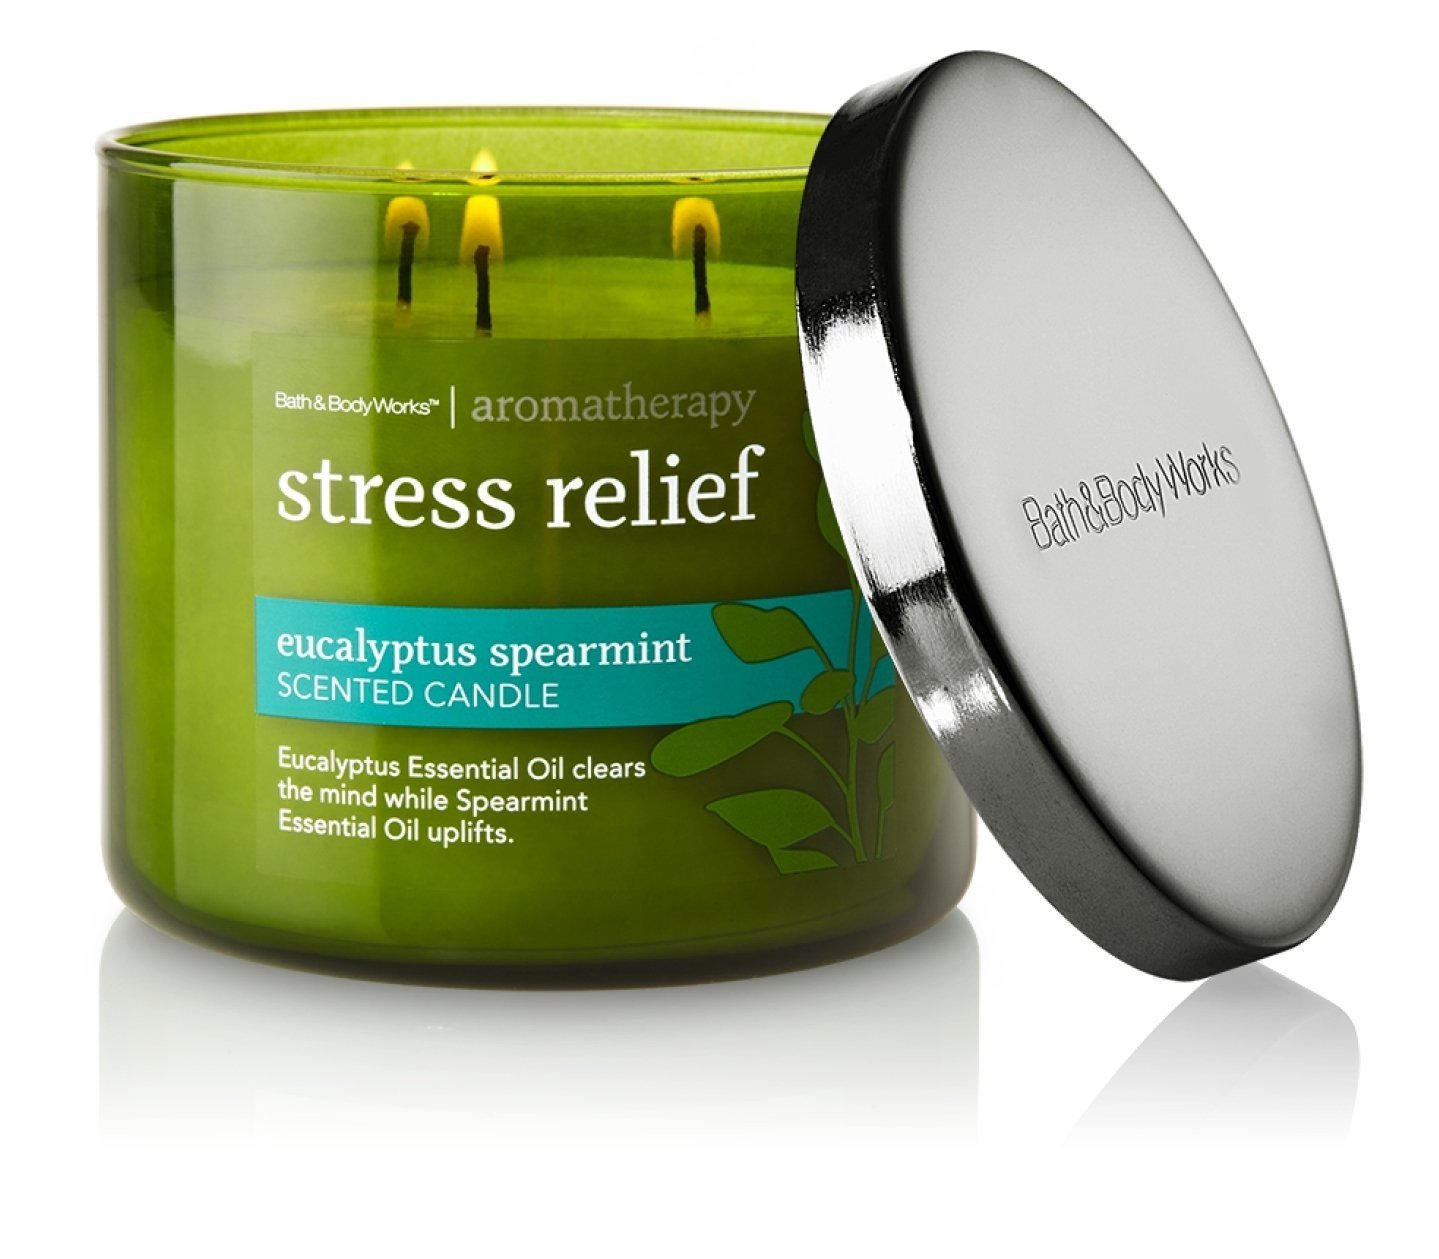 The fresh, minty fragrance of the Bath and Body Works Eucalyptus Spearming aromatherapy candle is sure to leave you relaxed, refreshed and rejuvenated.  The combination of the two fragrances will remind you of your favorite spa...without the steep spa price!